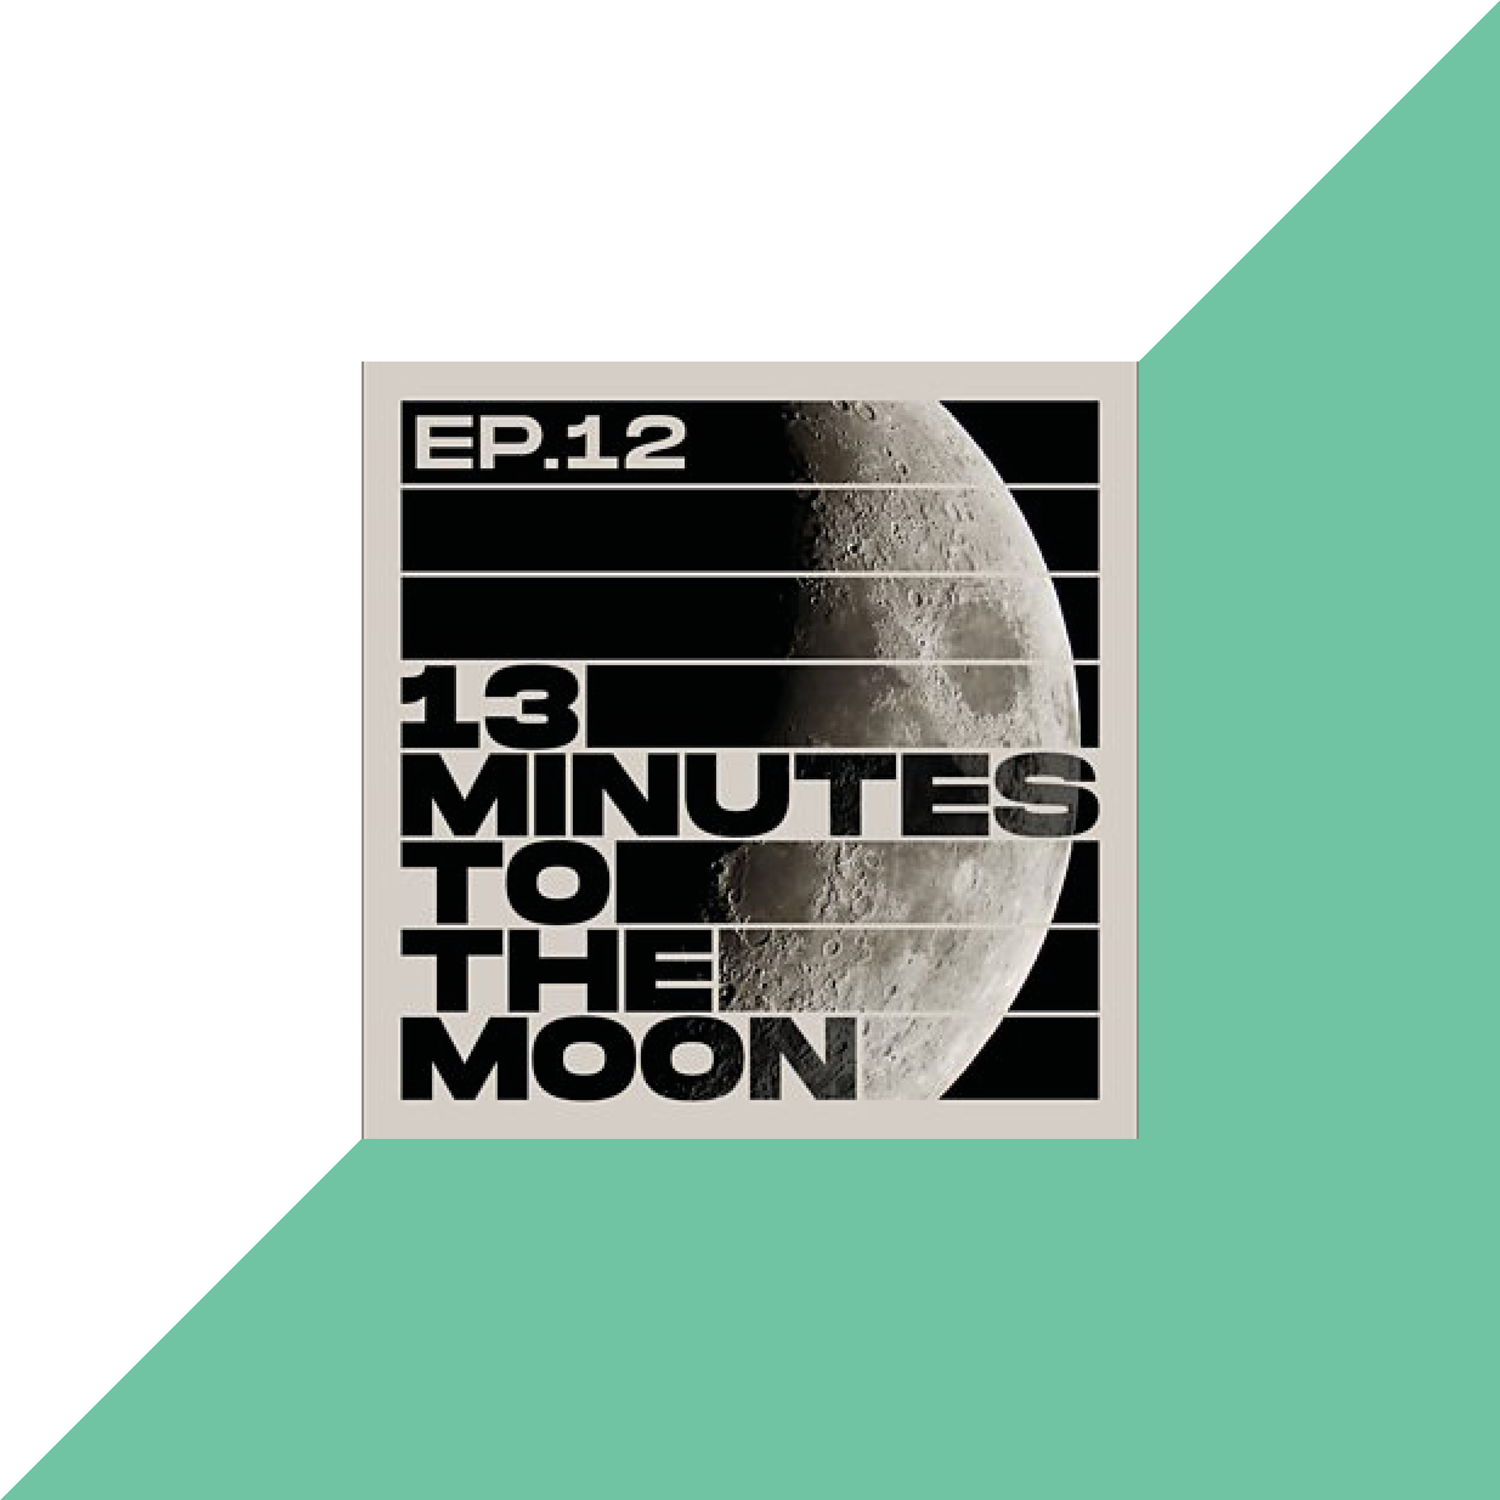 13-minutes-to-the-moon-podcast.png